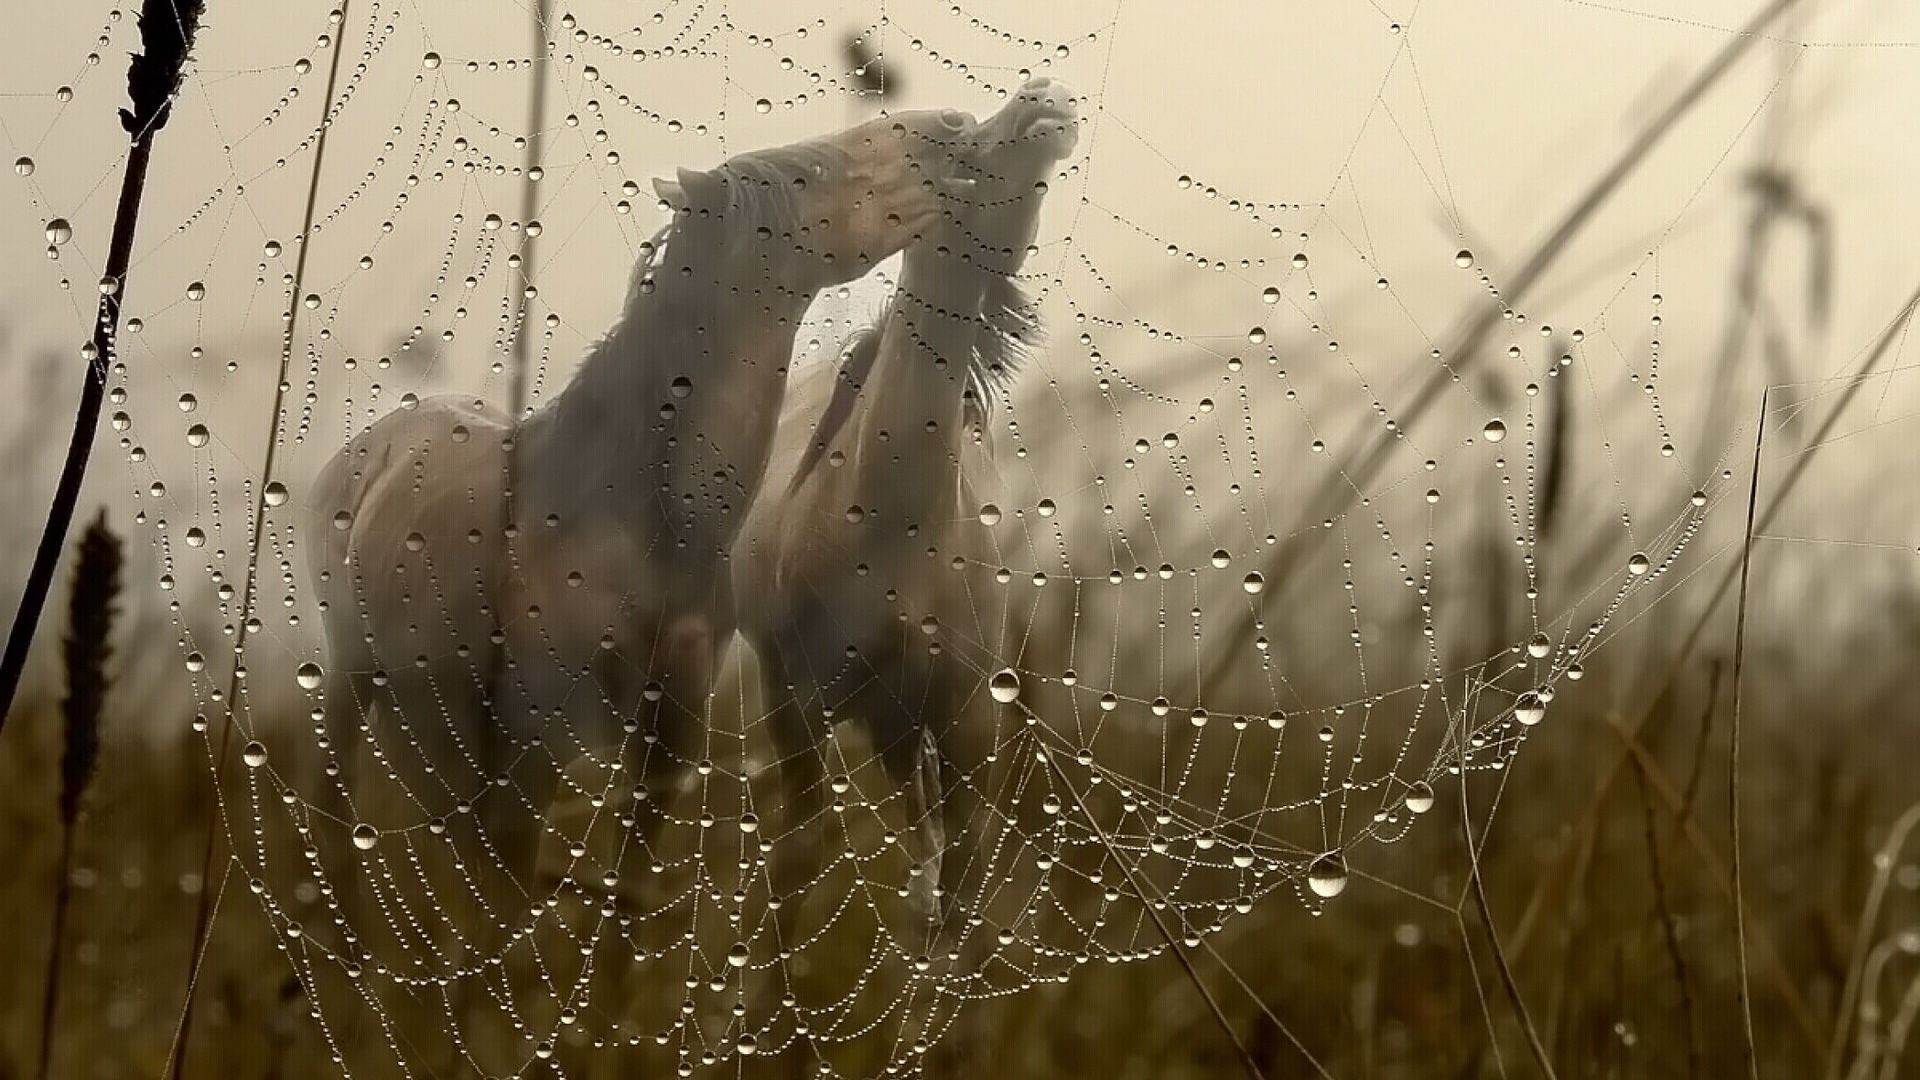 cobweb with dew drops on a background of frolicking horses